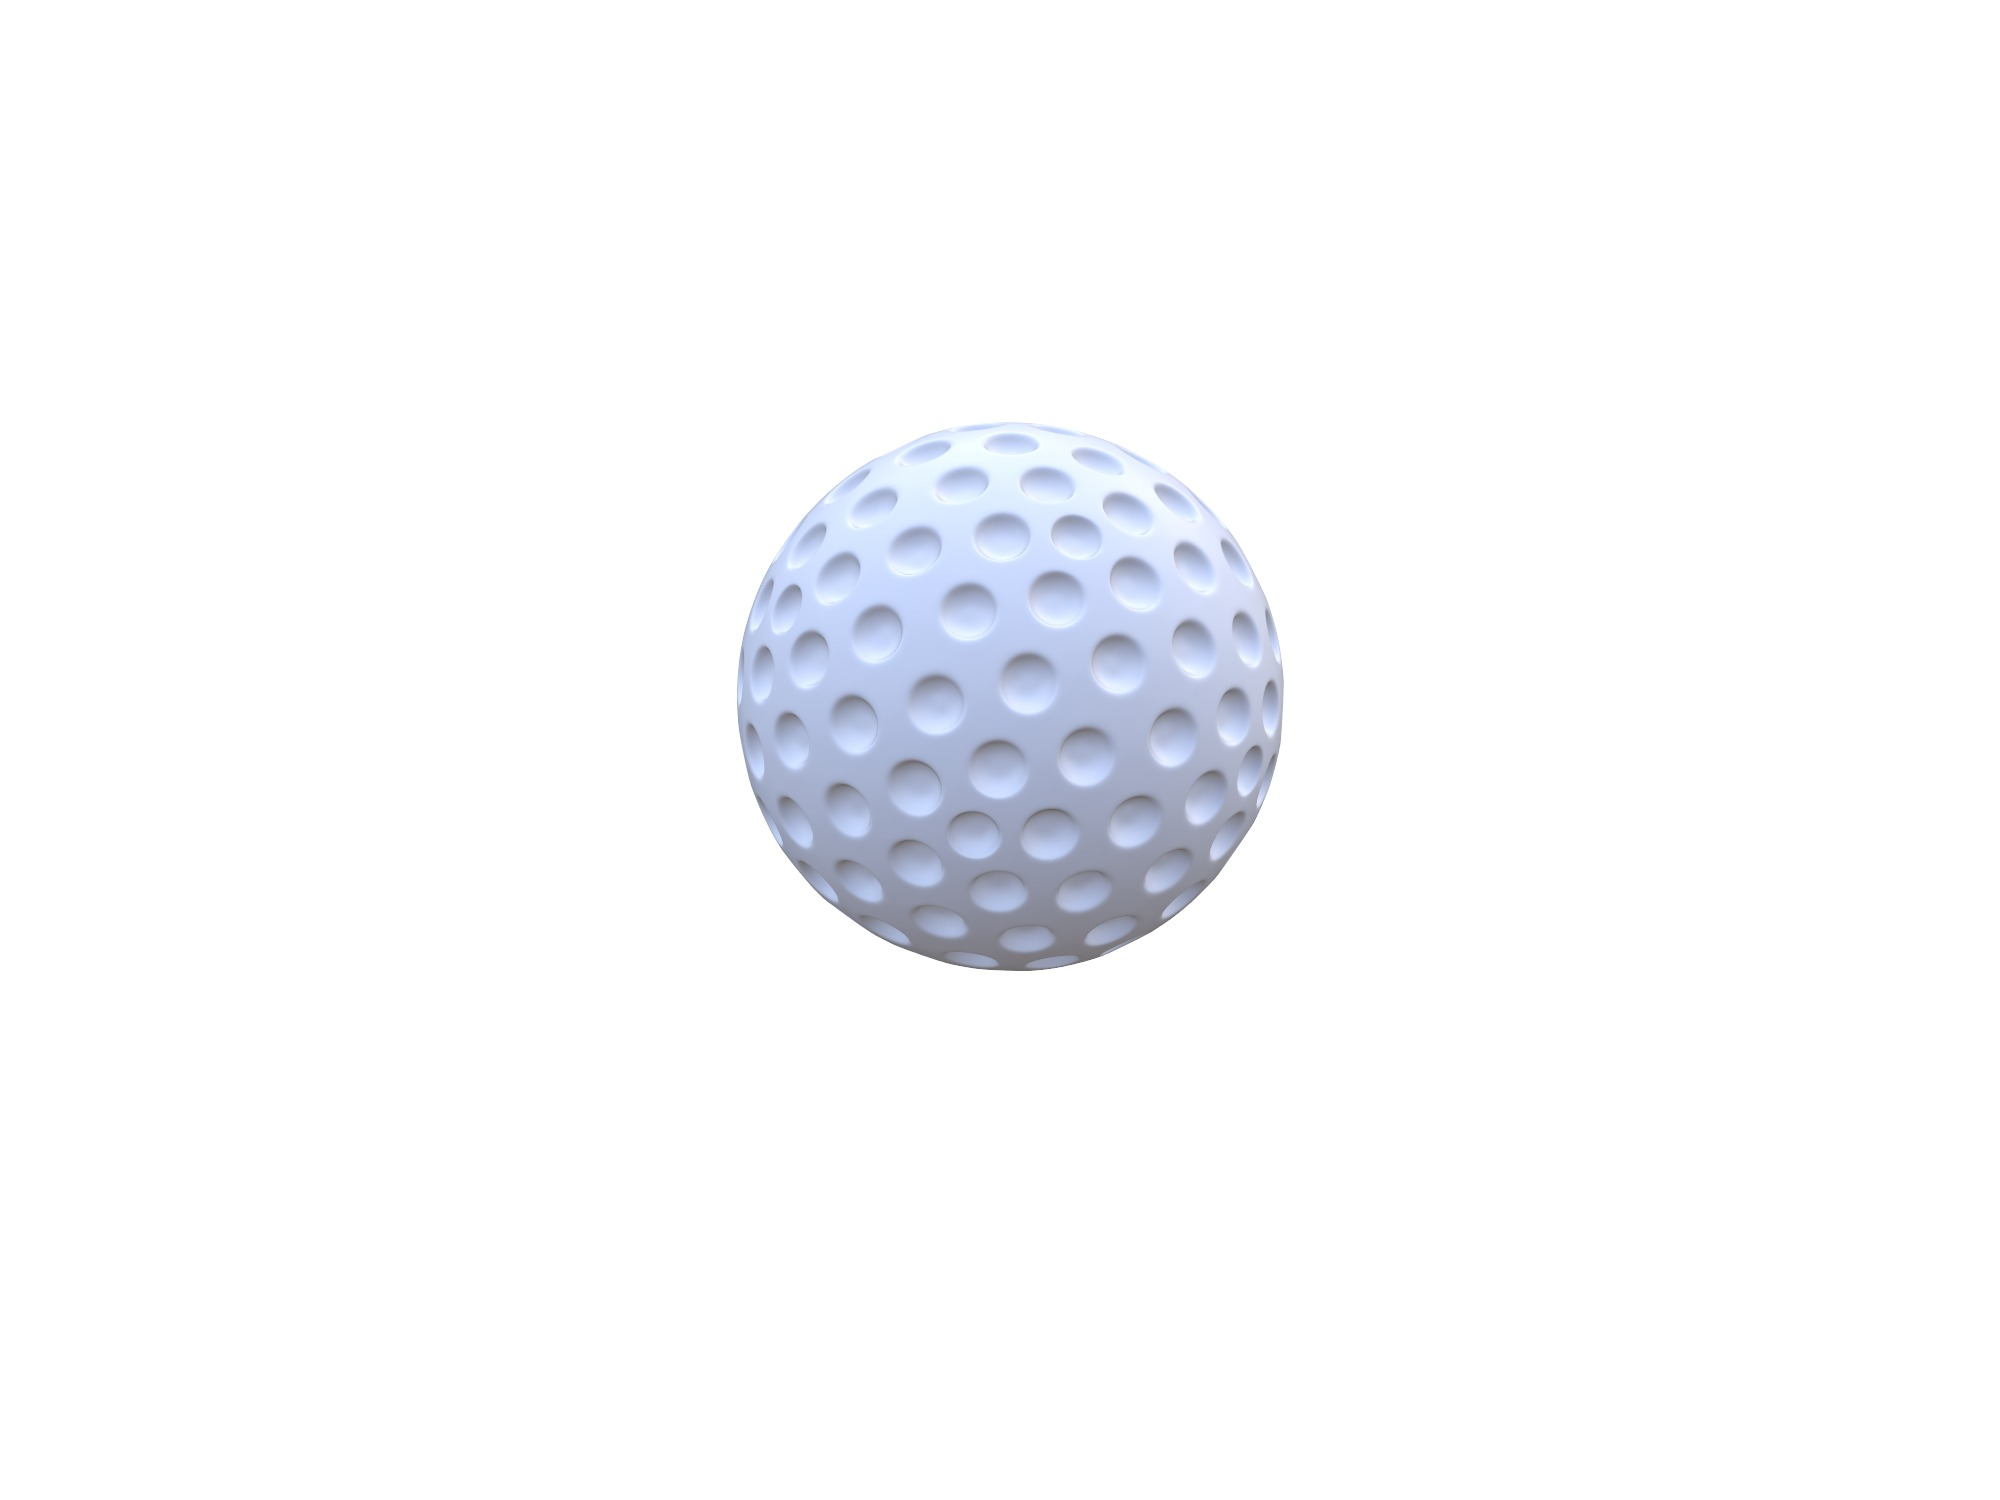 Golf Ball - 3D design by Vectary assets Jun 6, 2018